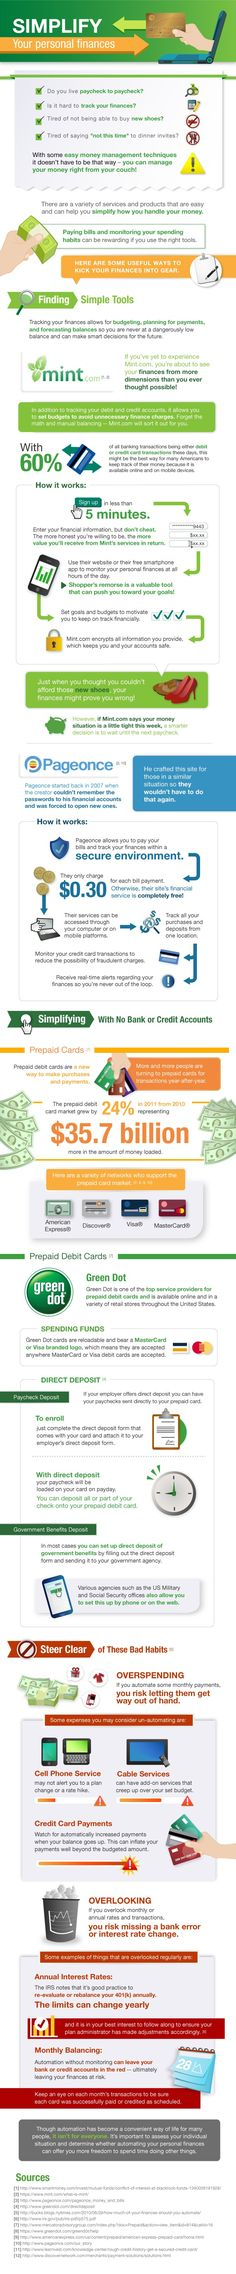 Tackle Debt With Tech In 2013